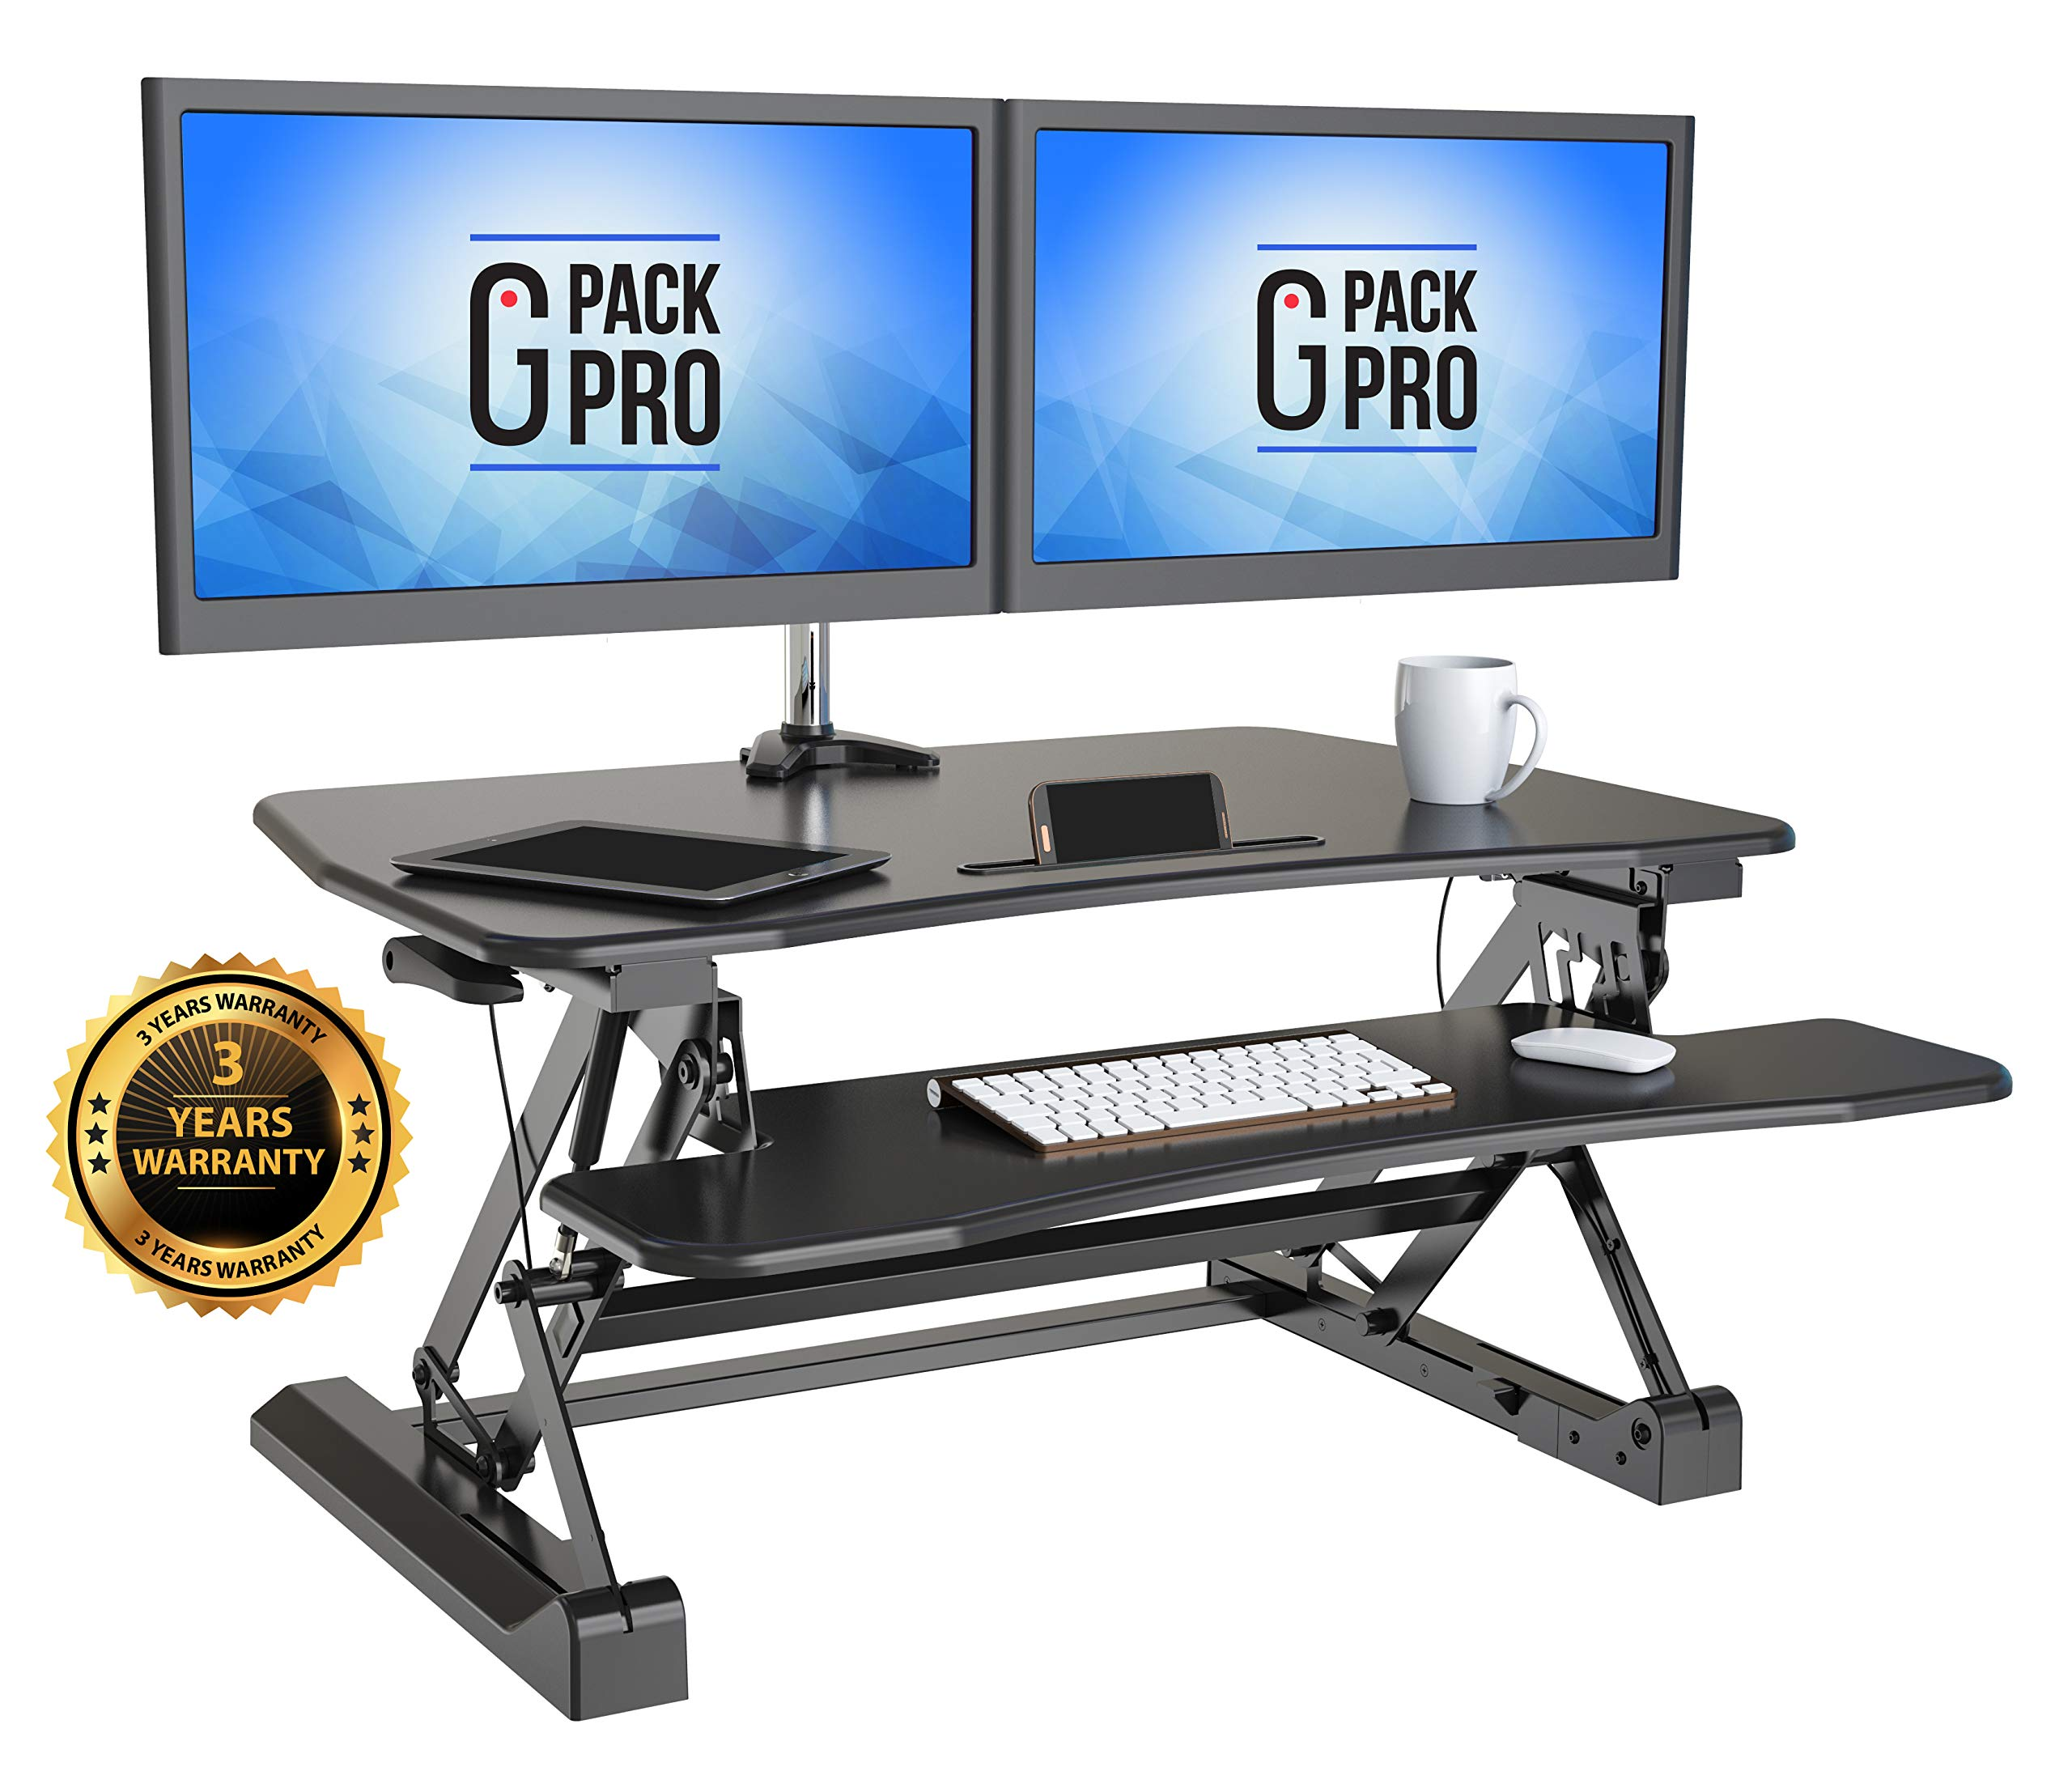 G-PACK PRO - Desktop Standing Desk Converter | Sit-To-Stand Work Desk Riser | Adjustable from 5.7'' to 19.7'' | Fits Dual Monitor -Removable Keyboard Tray | Ergonomically Designed for Multipurpose Works by G-Pack Pro